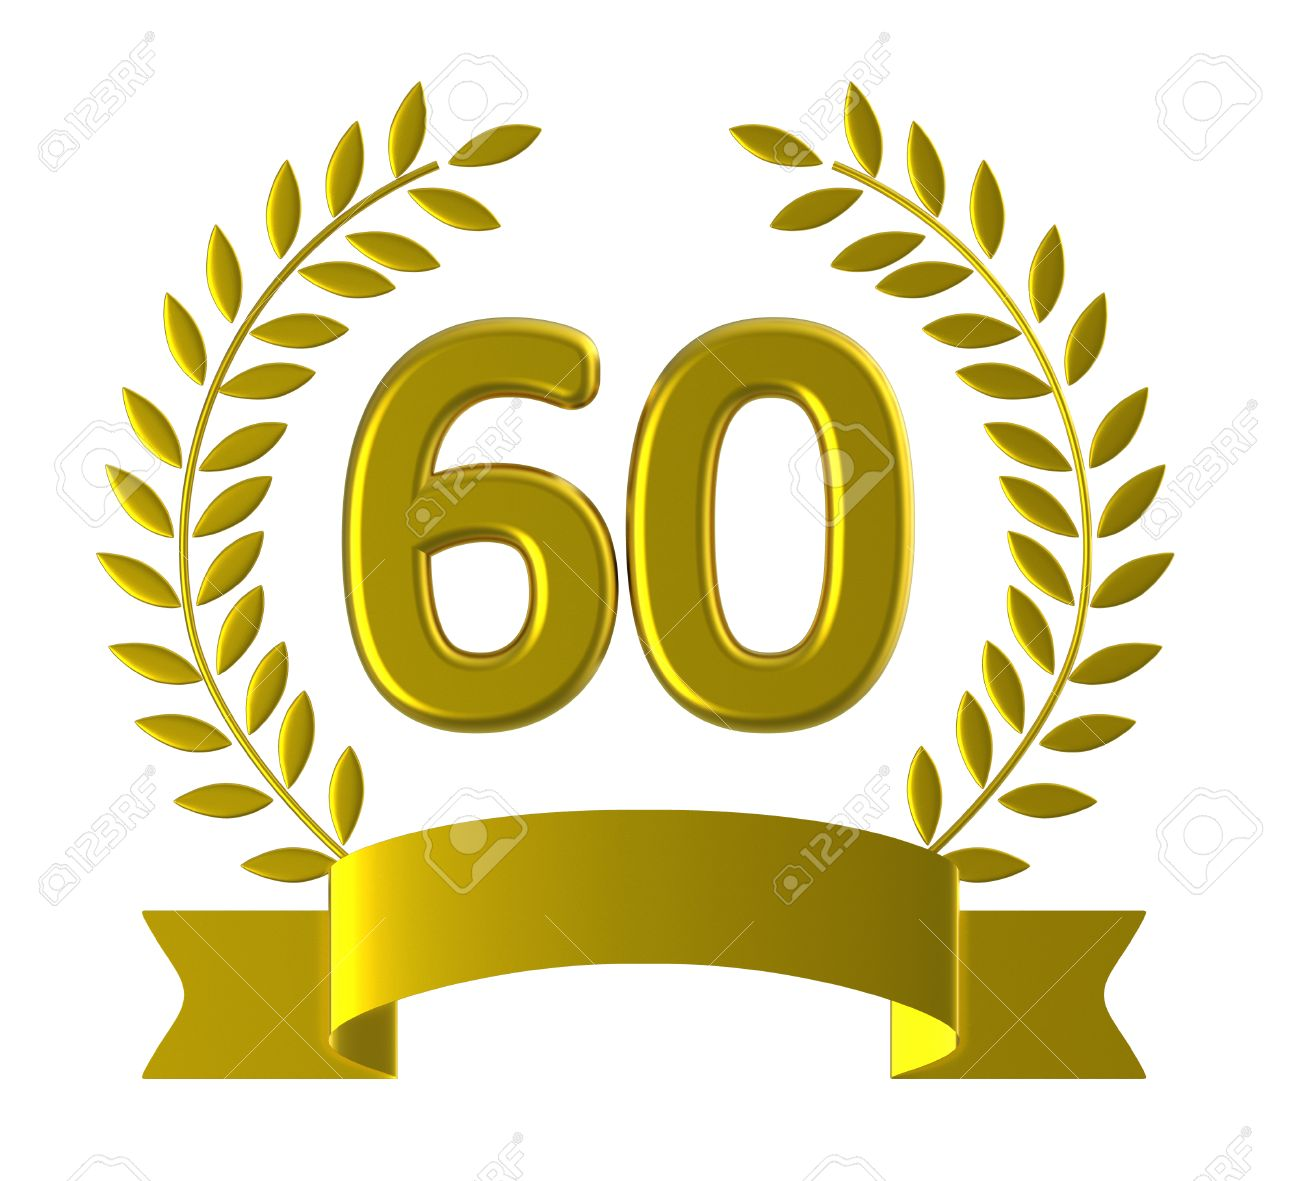 60th birthday clipart images ; 29699420-sixty-birthday-indicating-happy-anniversary-and-60th